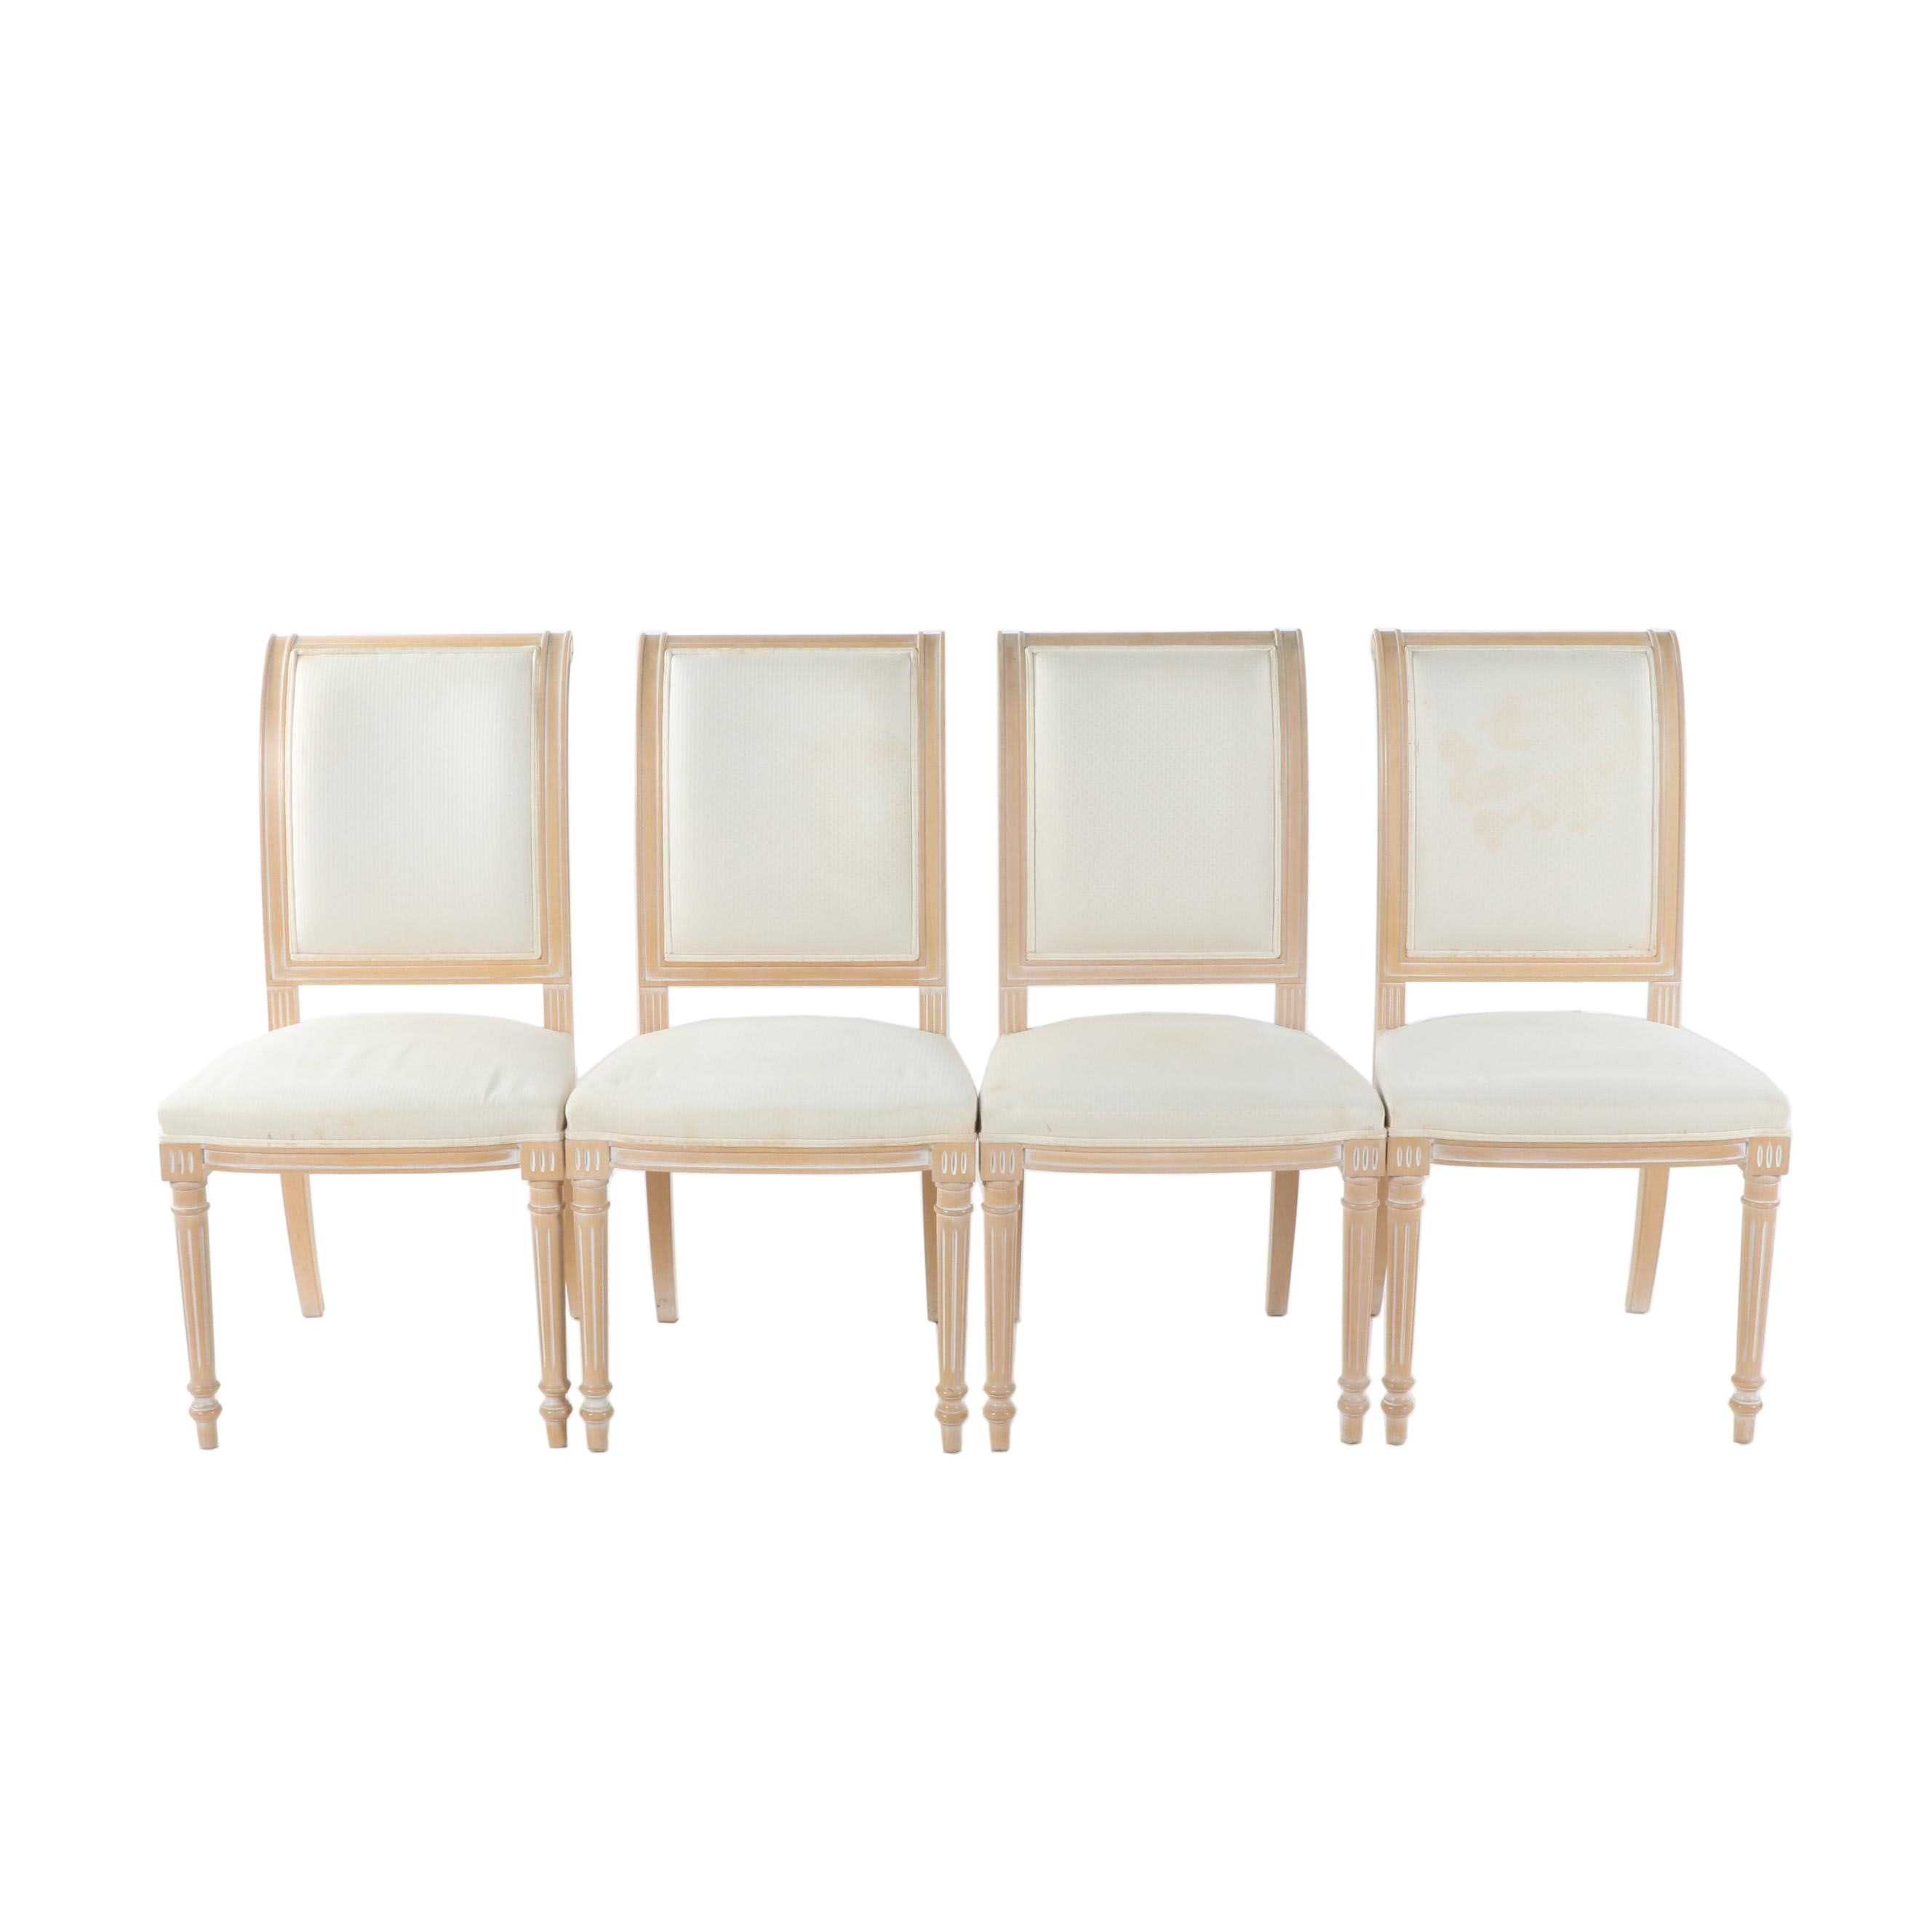 Louis XVI Style Upholstered Dining Chairs, 21st Century